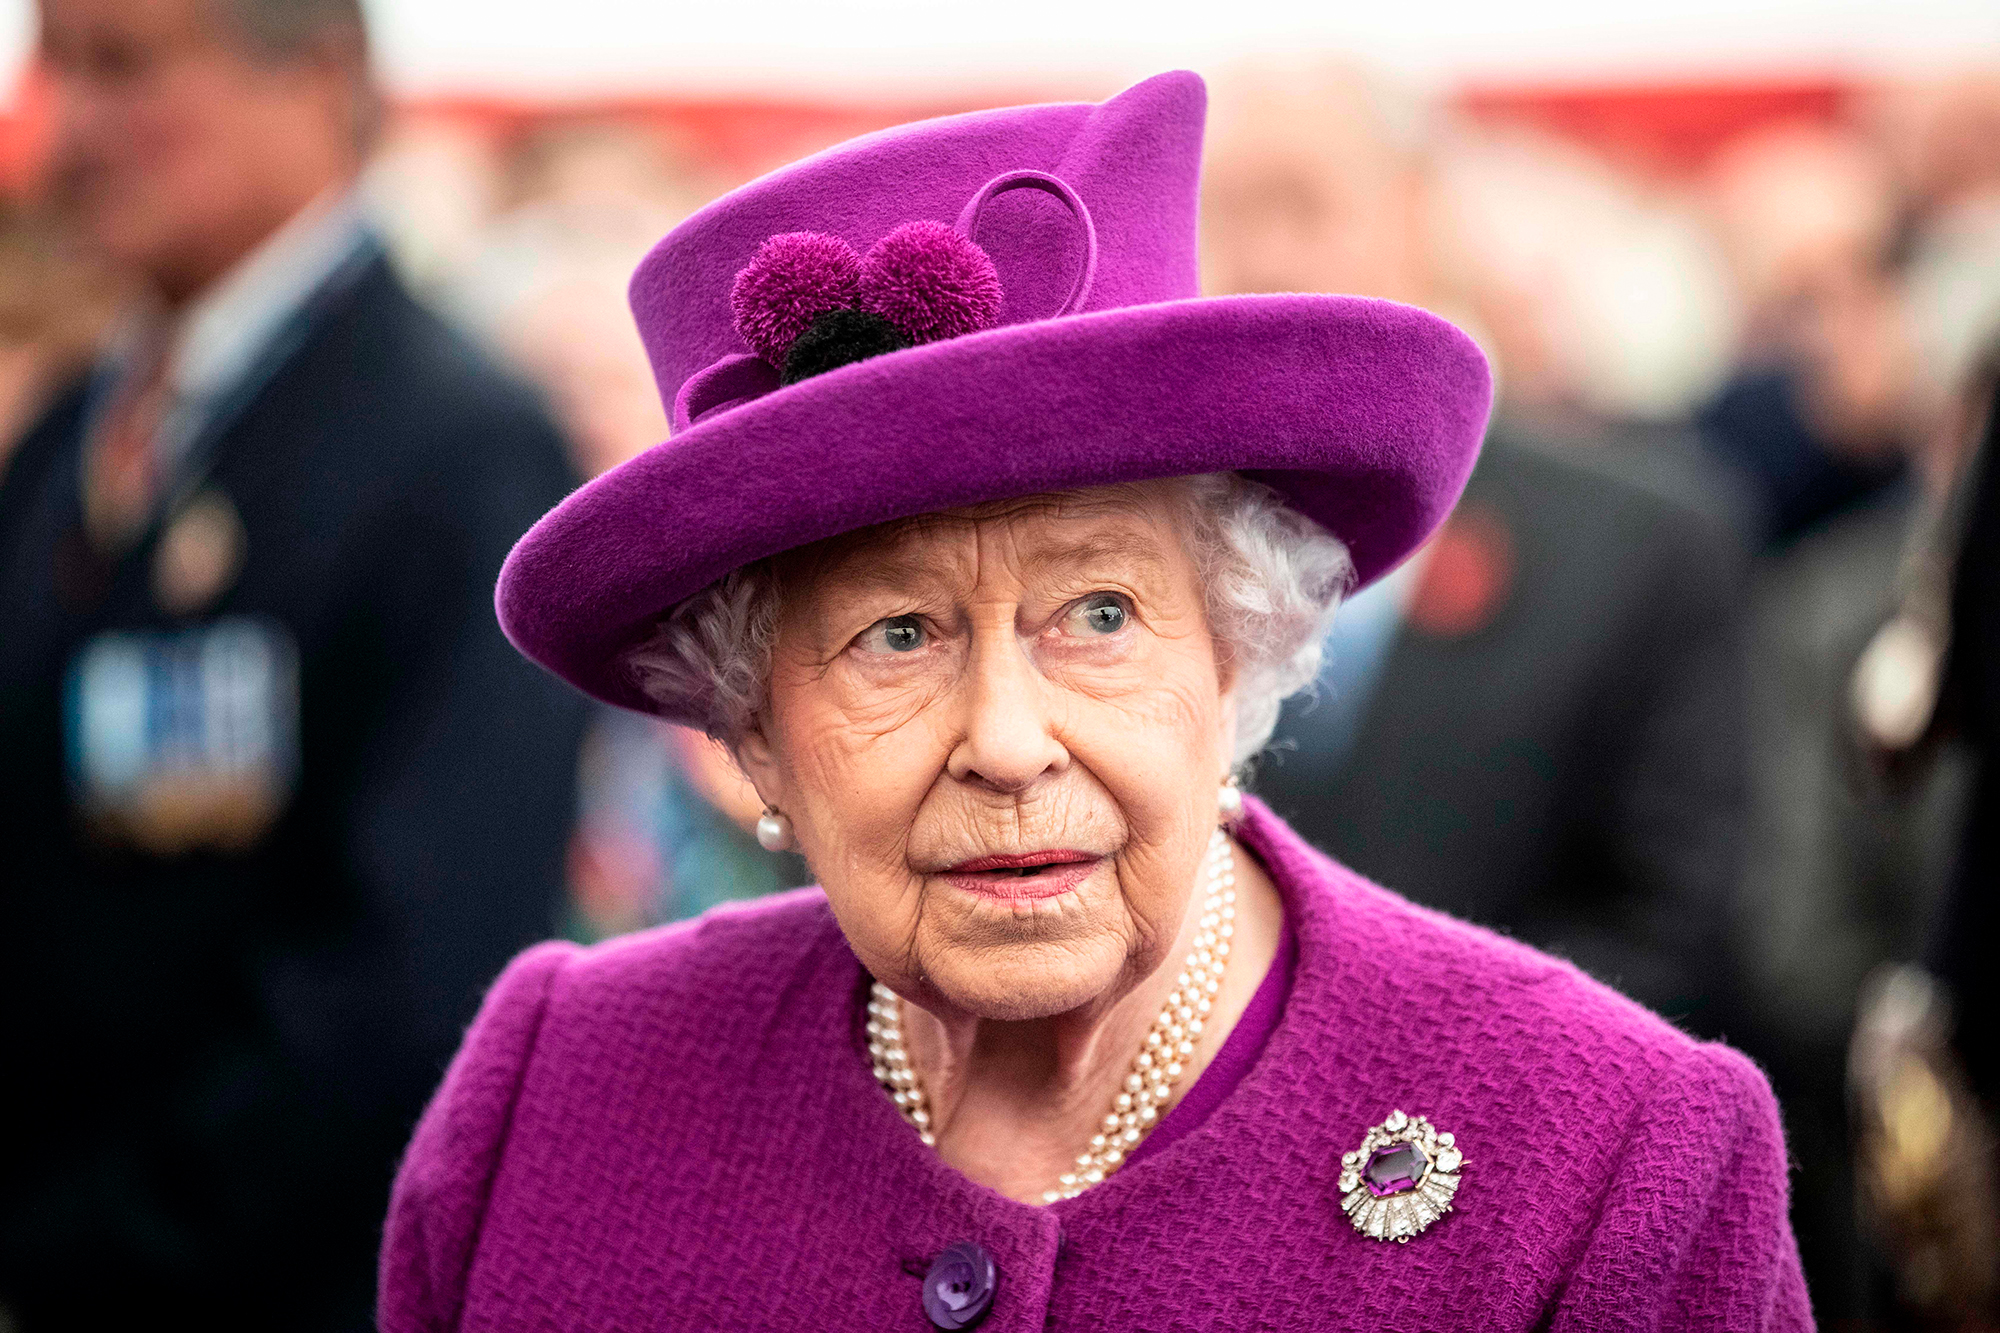 Buckingham Palace is hiring an expert digital communicator to help maintain the Queen's online presence